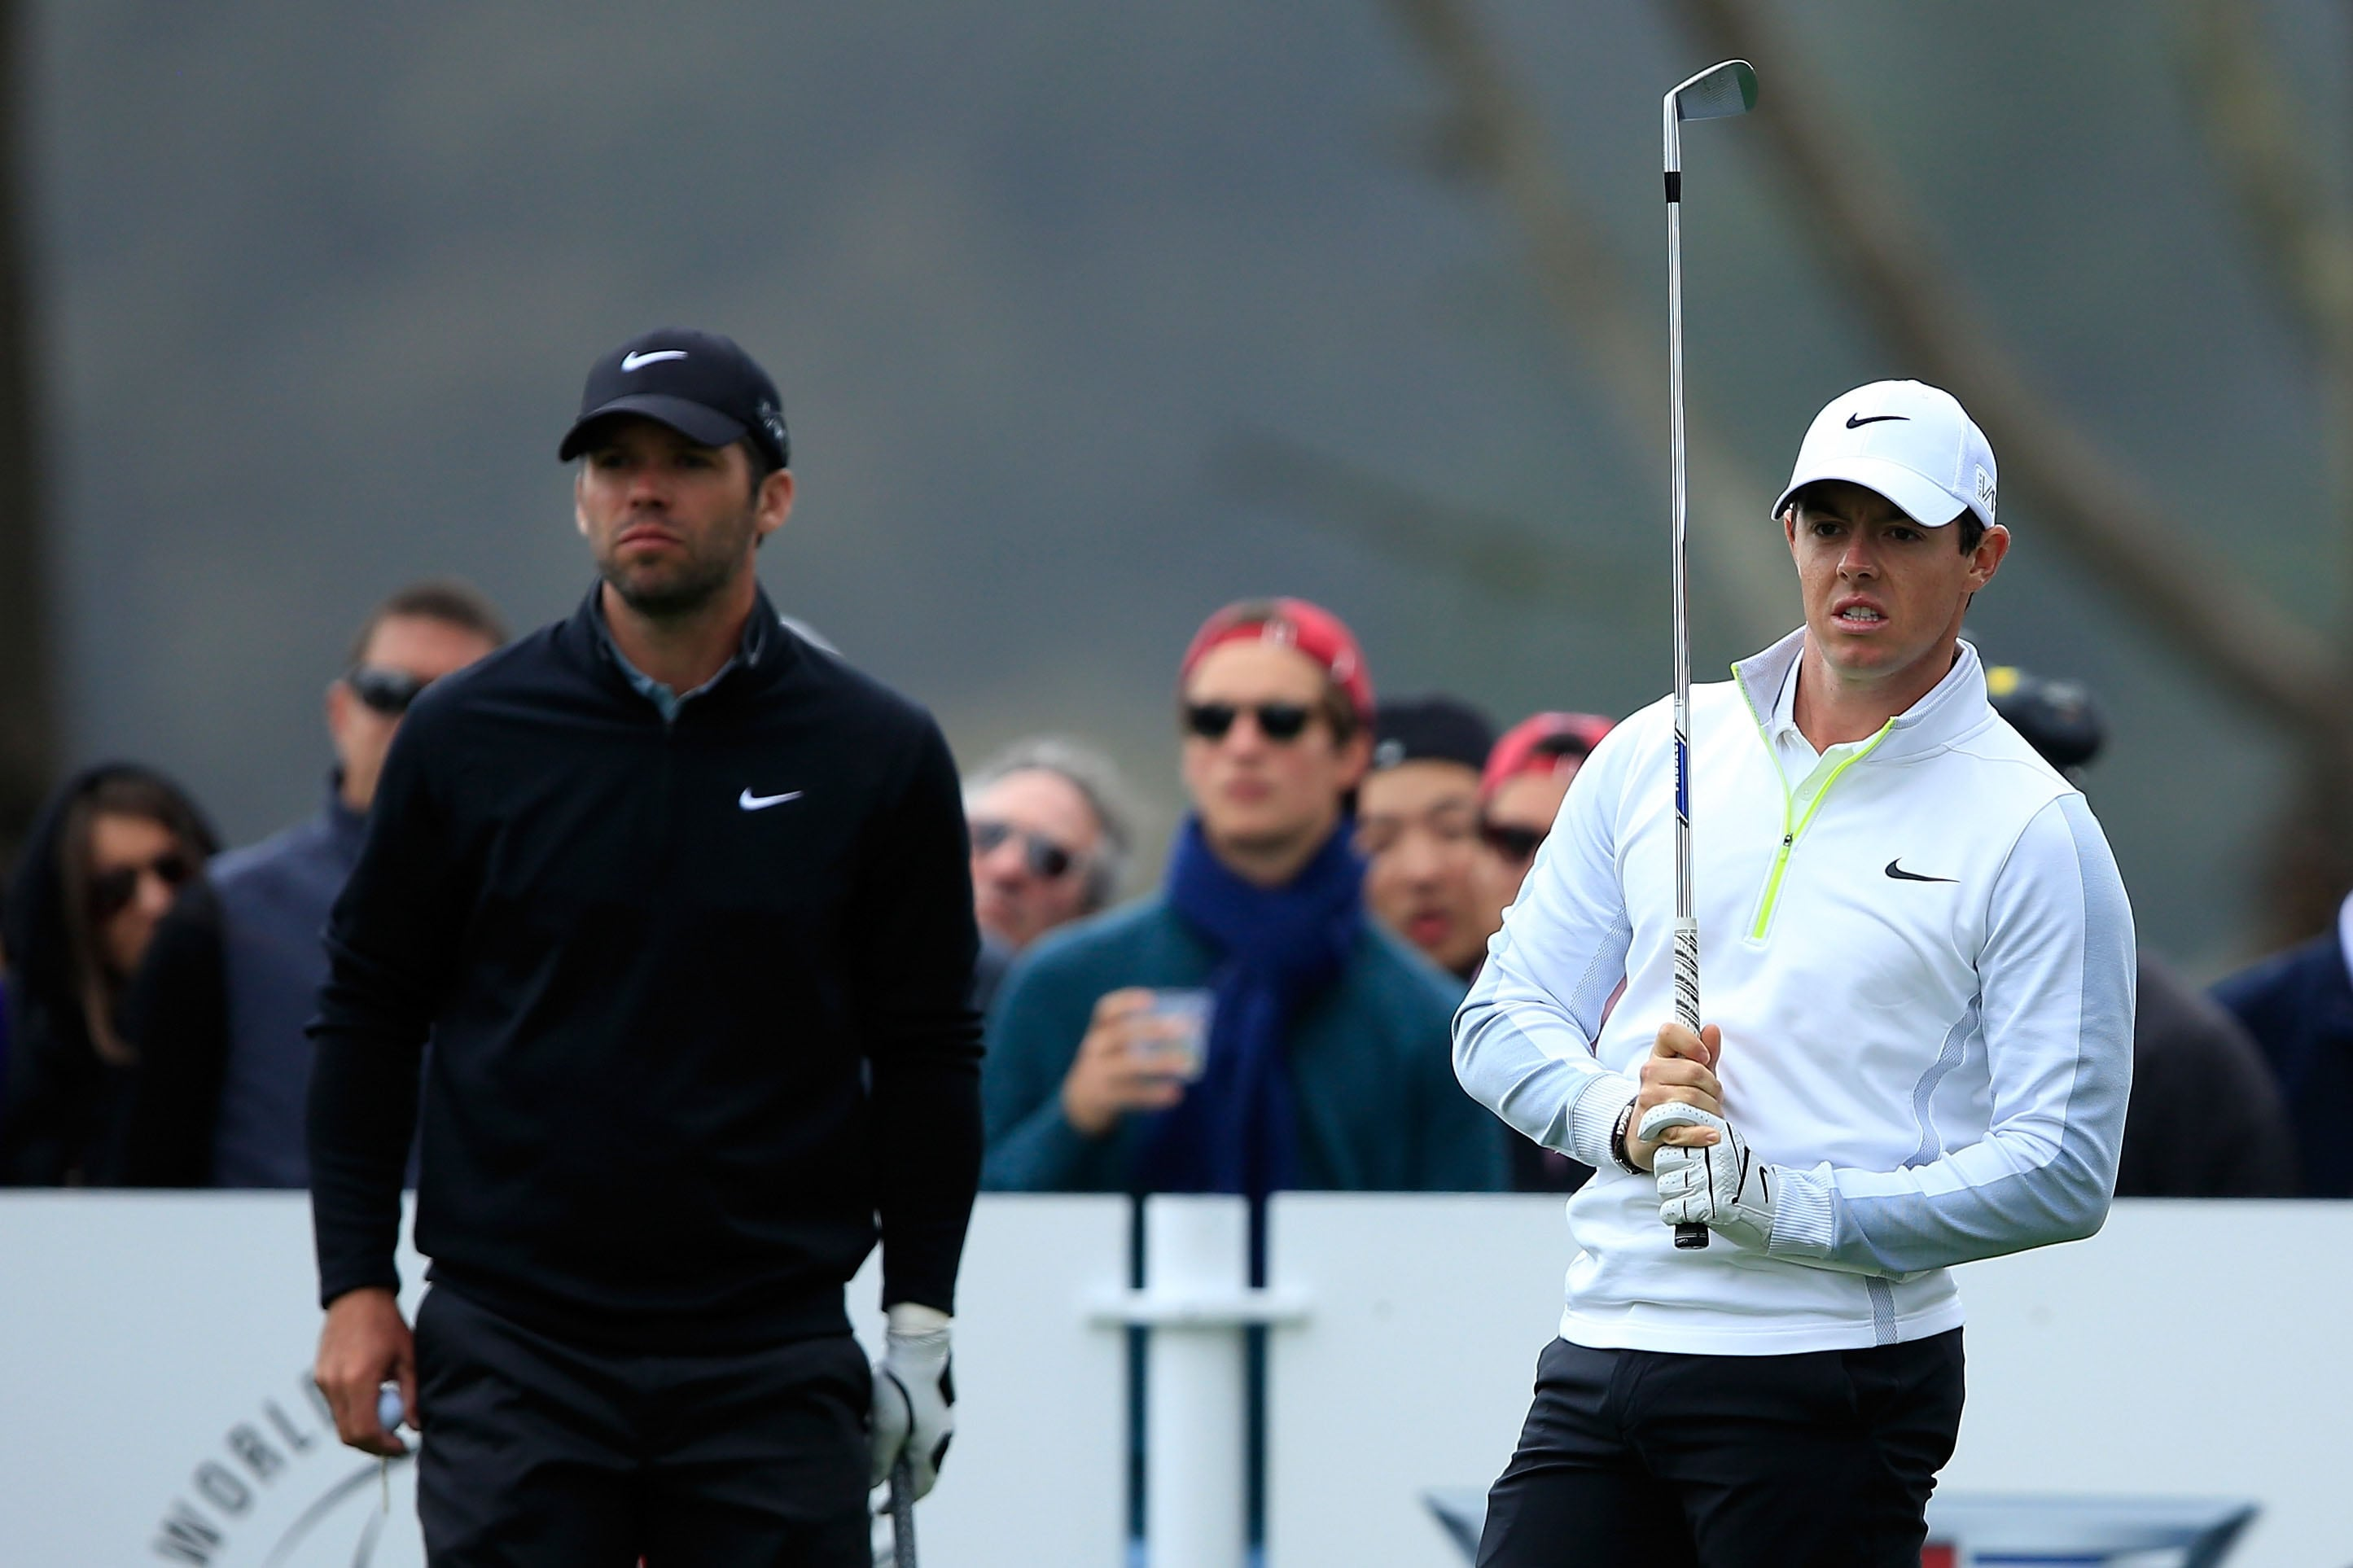 Paul Casey and Rory McIlroy